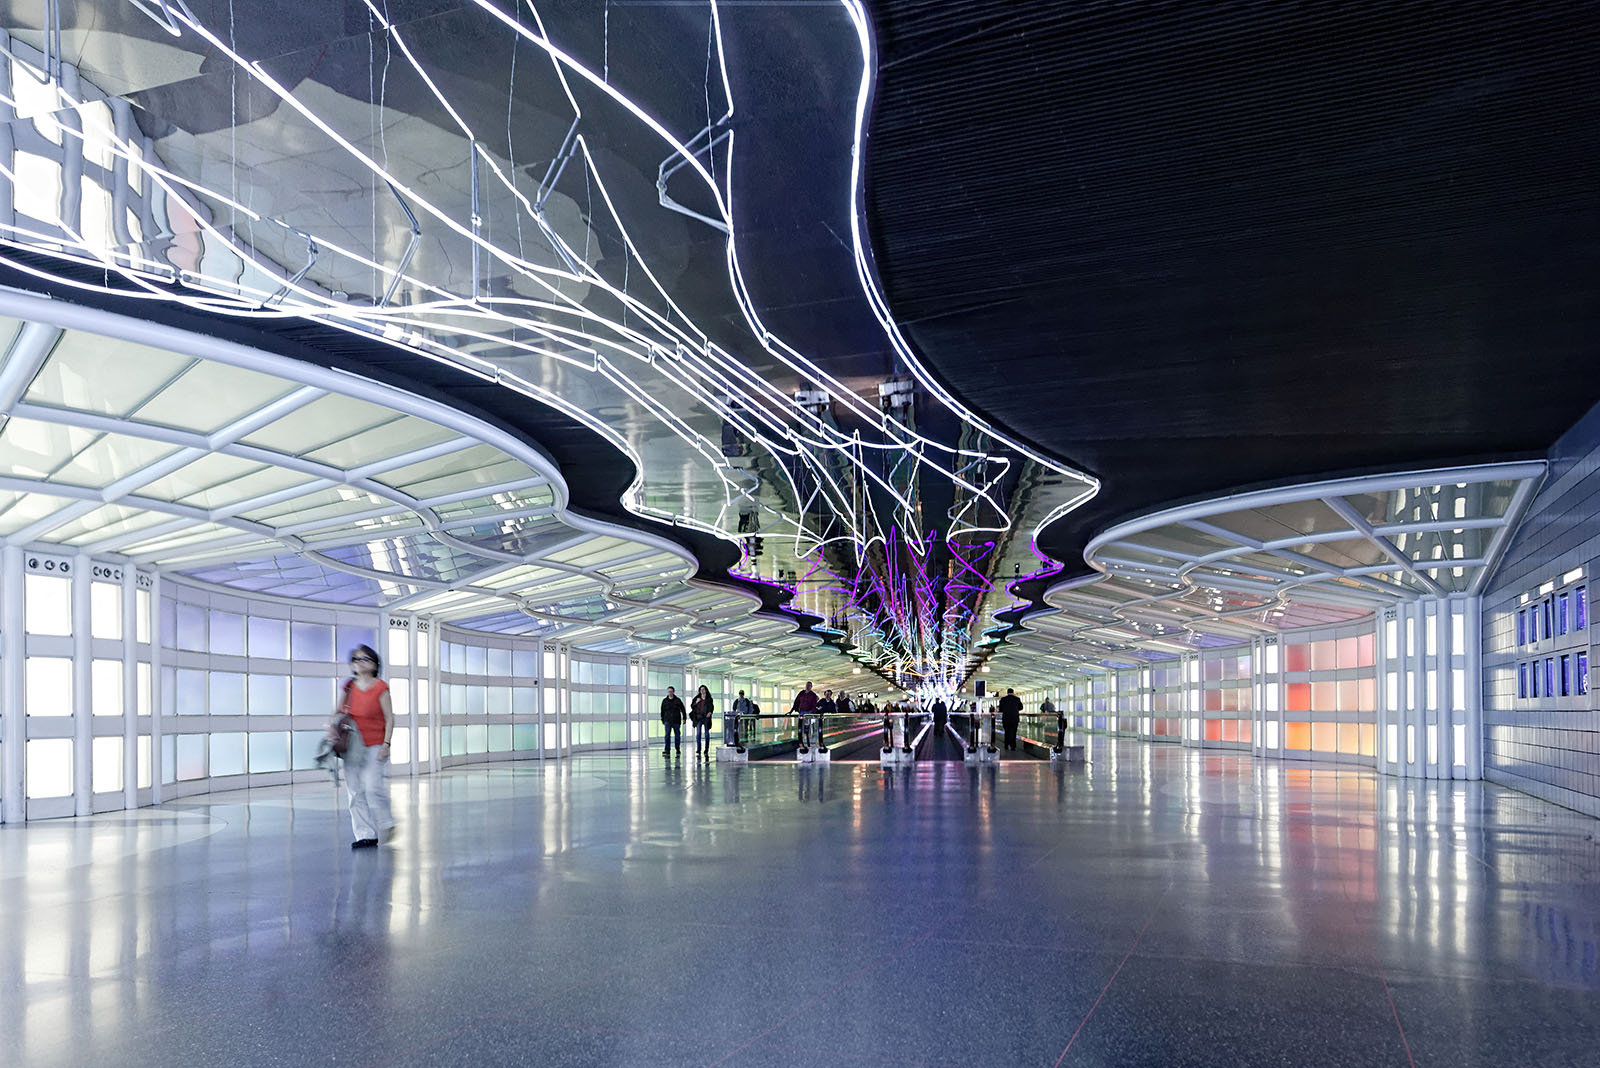 Architectural photography of the Chicago O'Hare Airport Pedestrian Tunnel. Paul Dingman is an architectural photogapher specializing in airports, transportation, and large scale project. He is based in China and works throughout China and Asia.